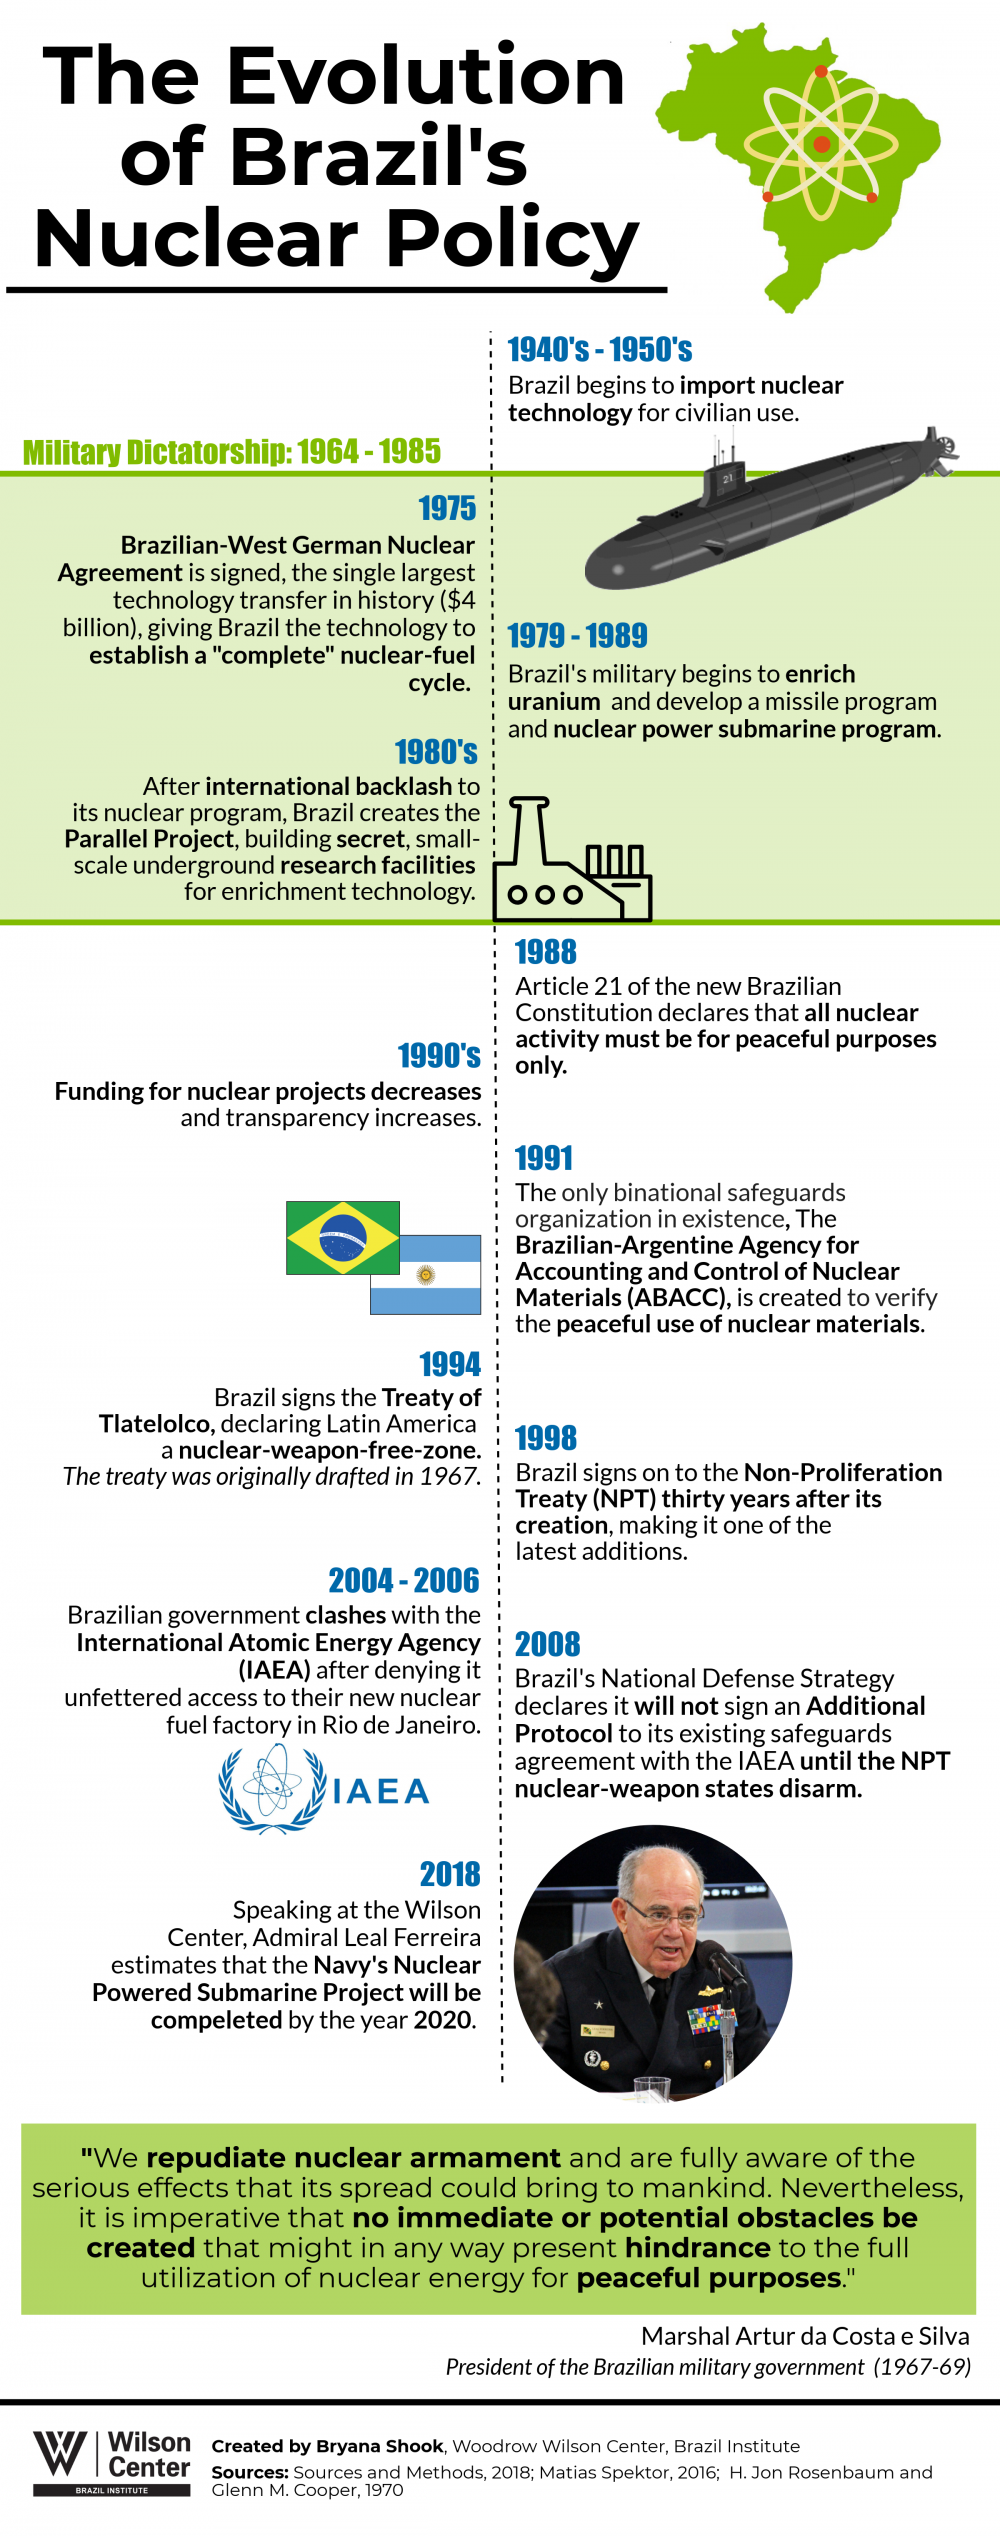 The Evolution of Brazil's Nuclear Policy